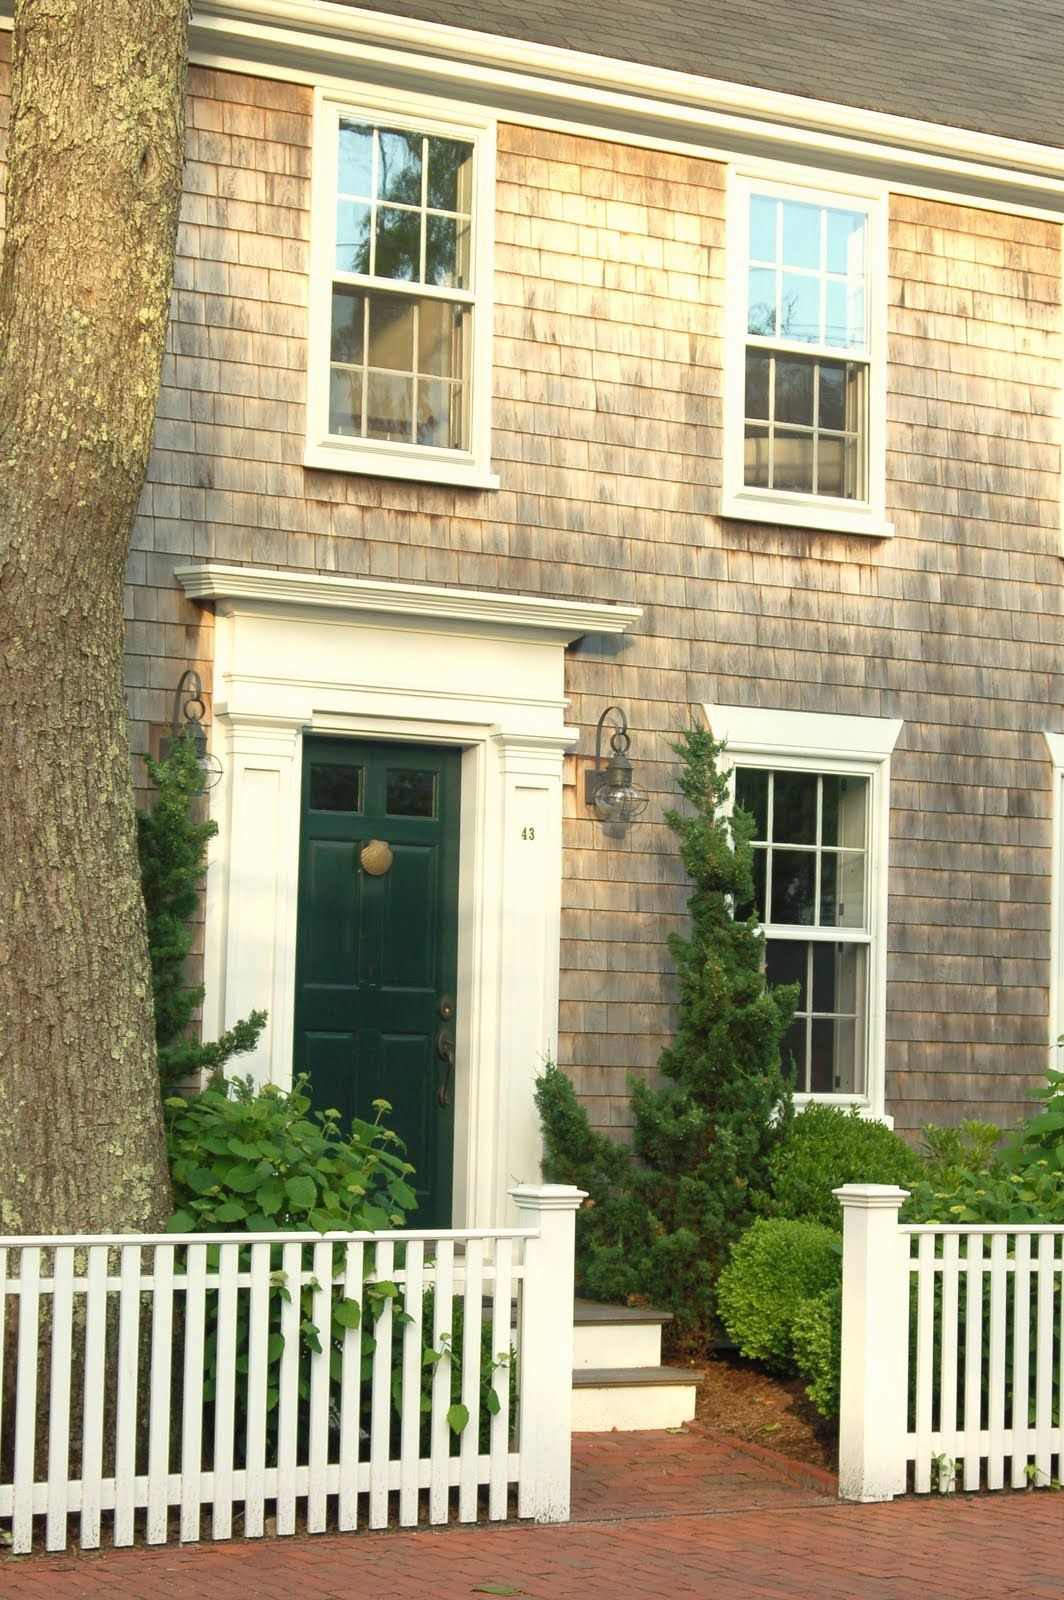 Nantucket shingle cottage quaint cottages pinterest for Nantucket shingle style